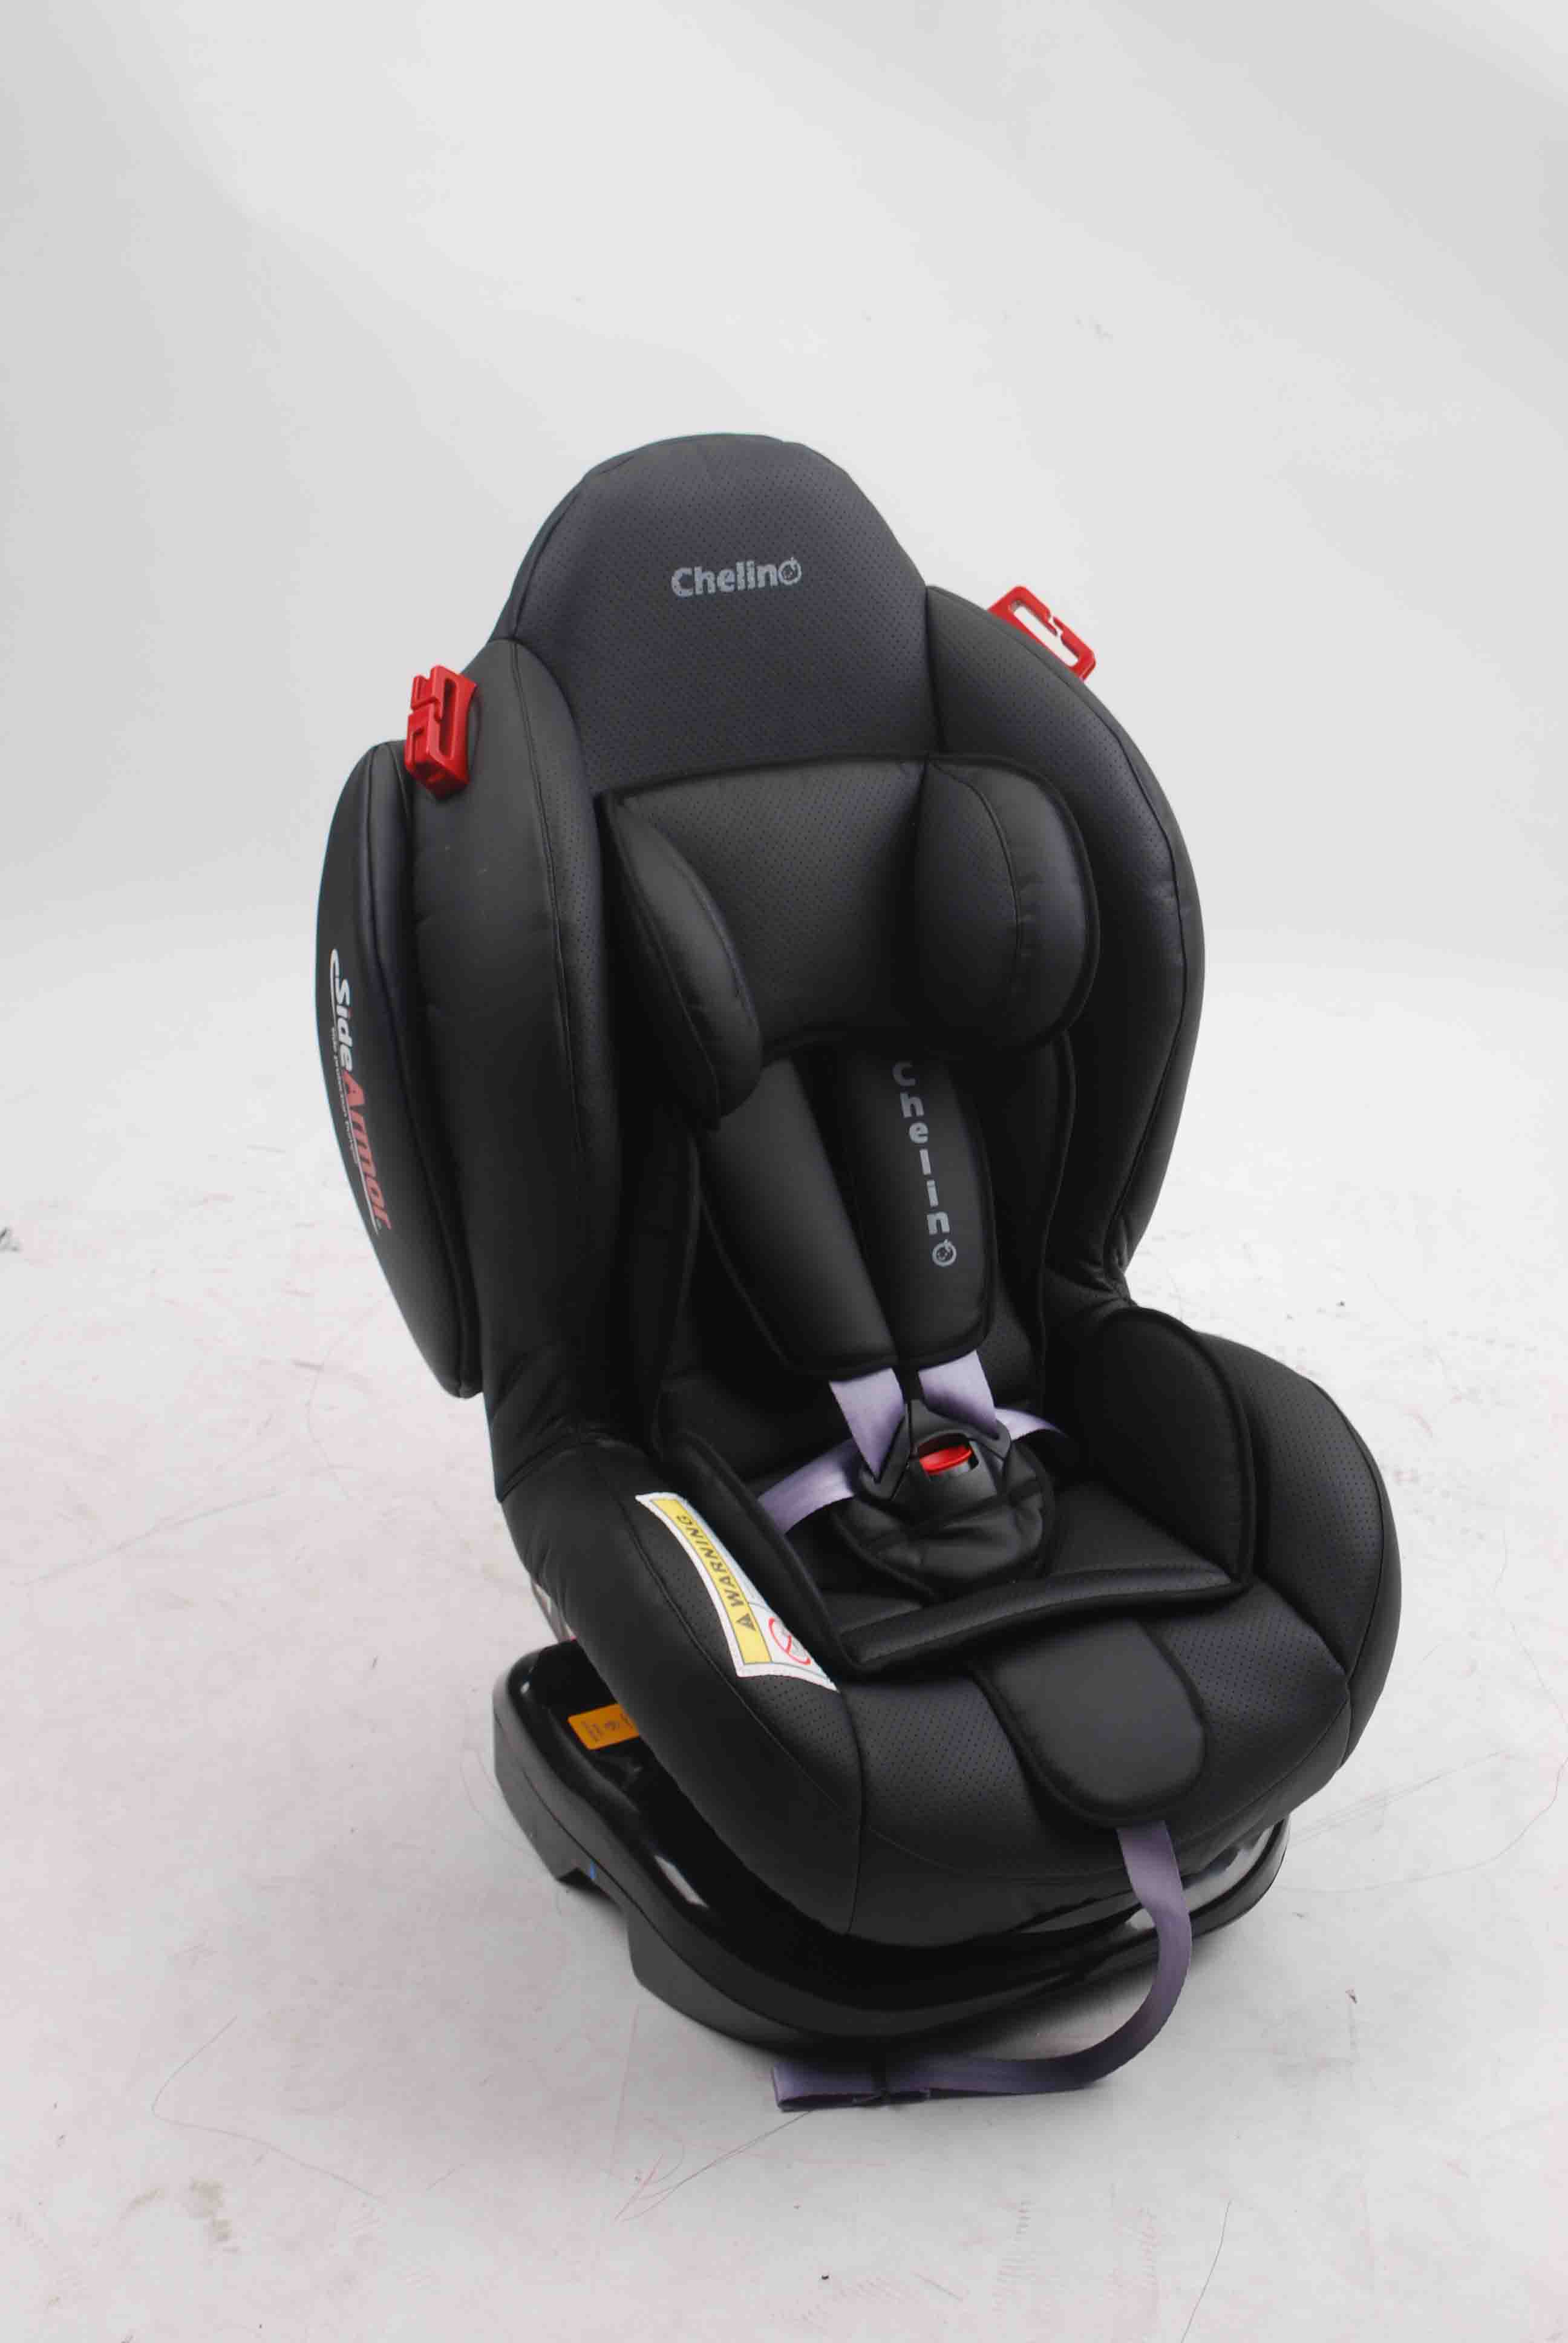 Chelino - Atlantis Topline Leather Car Seat